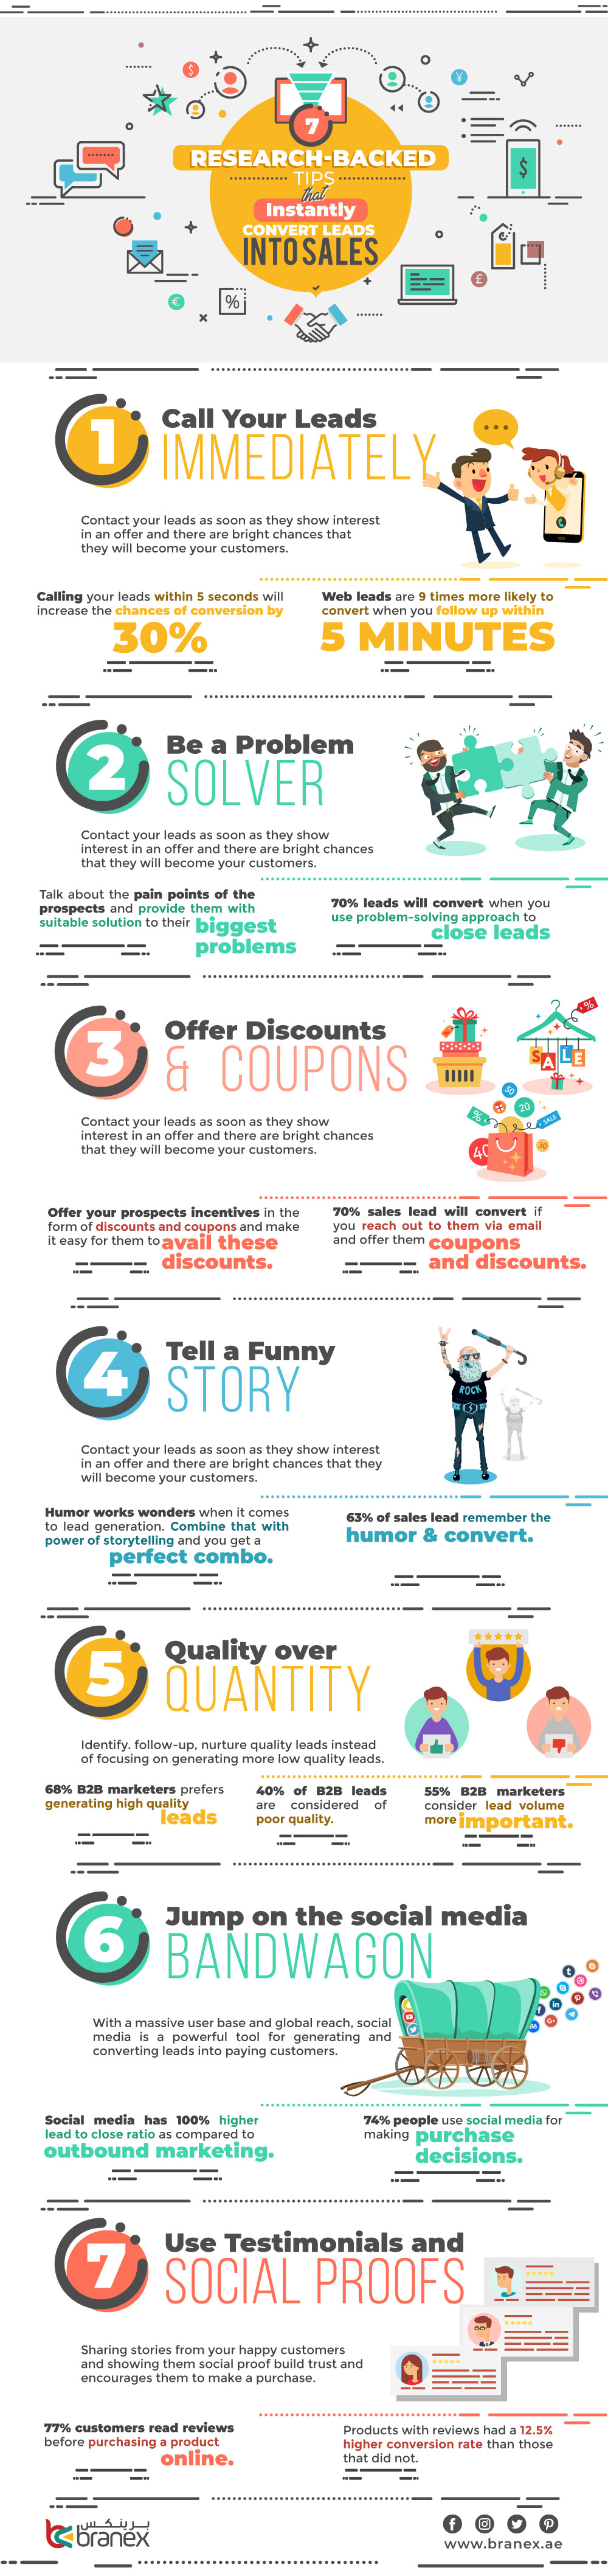 Convert Leads into Sales Instantly With These 7 Research-Backed Tips – Infographics